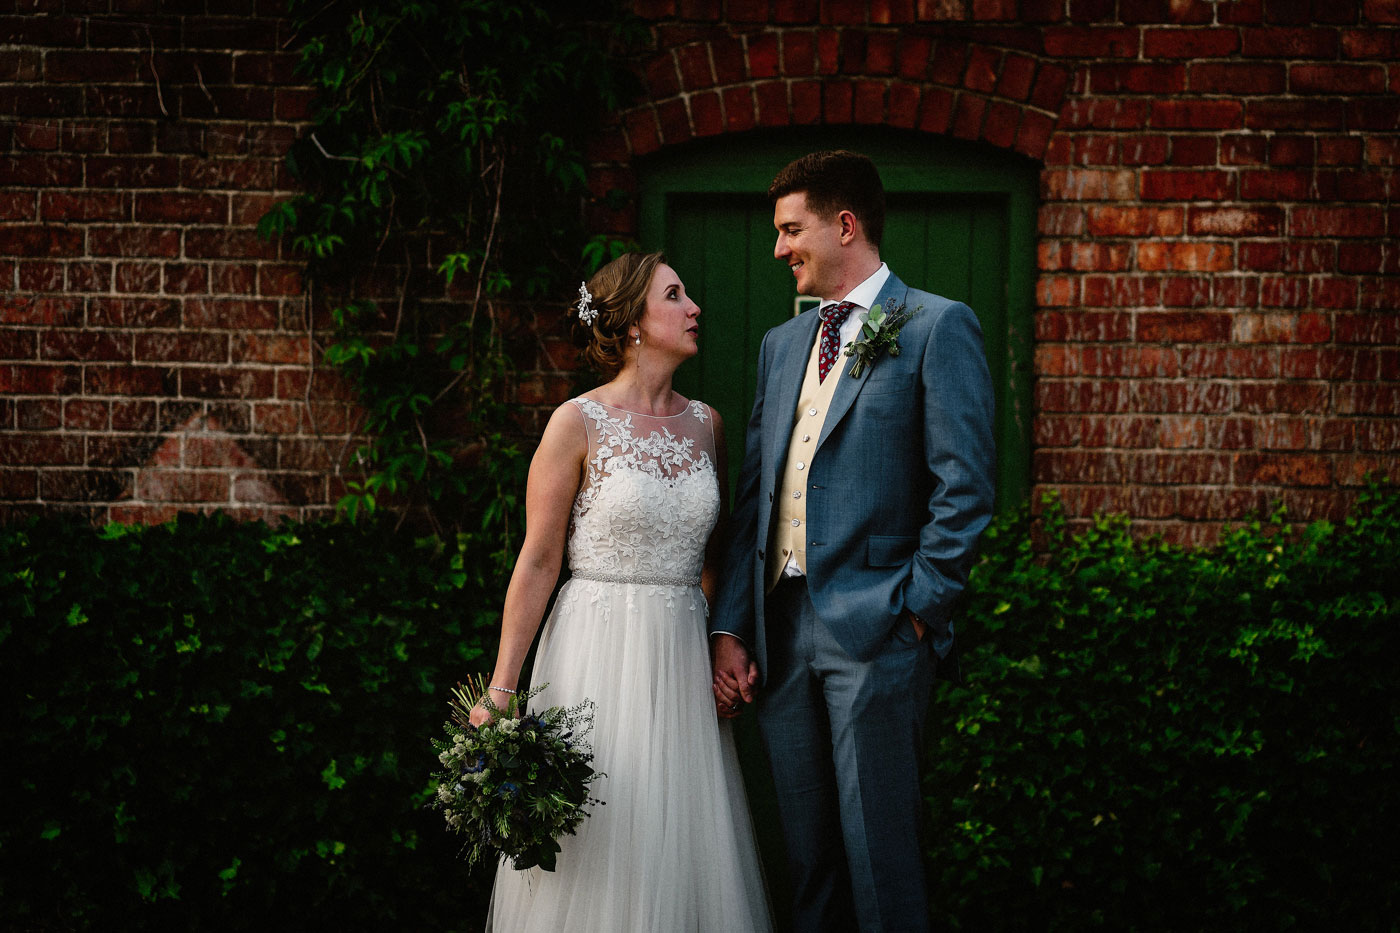 Thorpe Garden Wedding